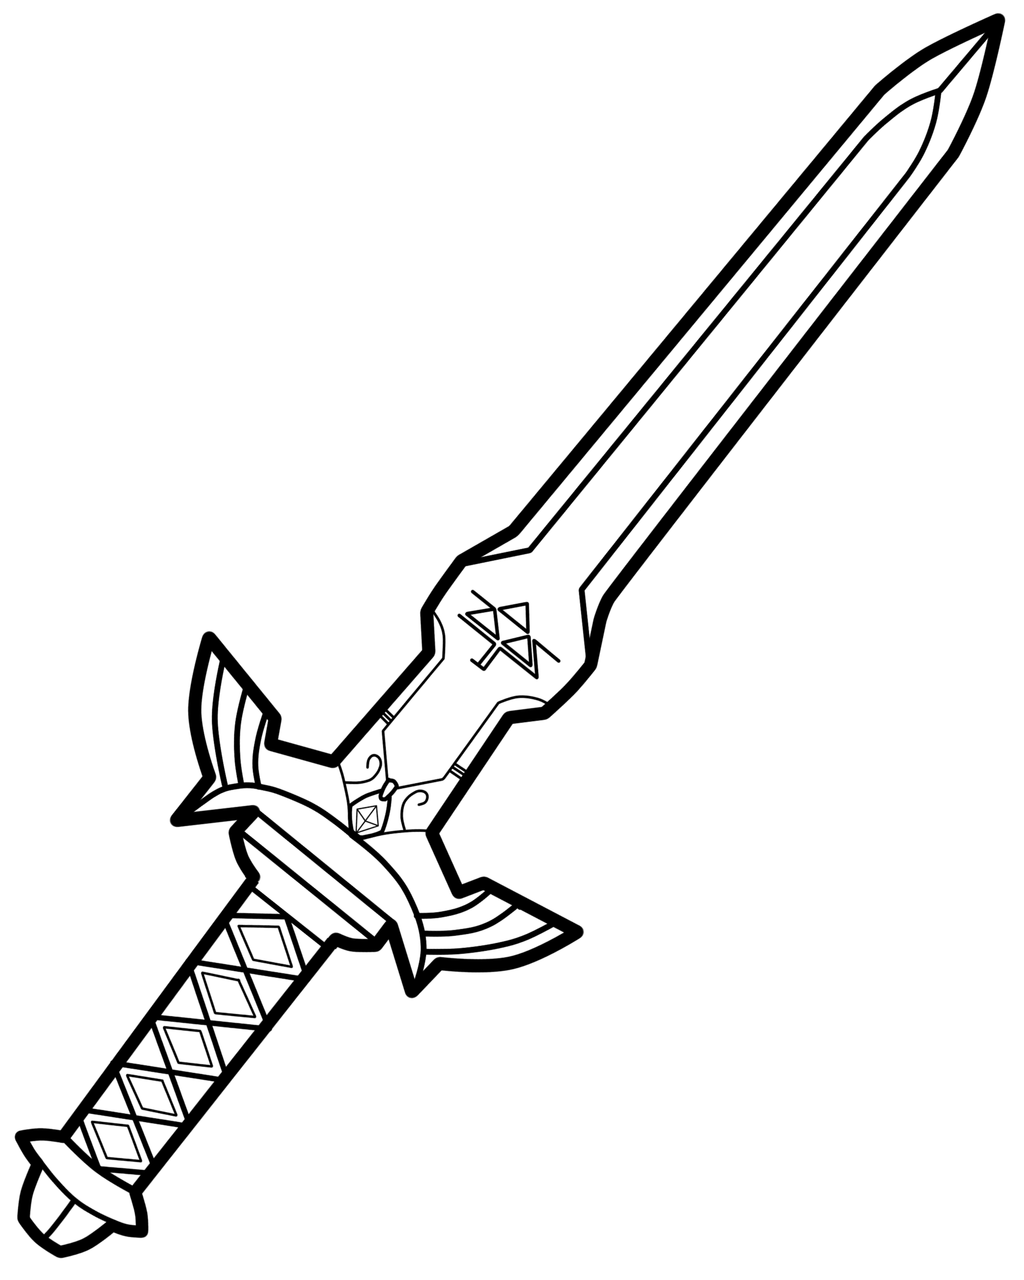 Katana Sword Drawing At Getdrawings